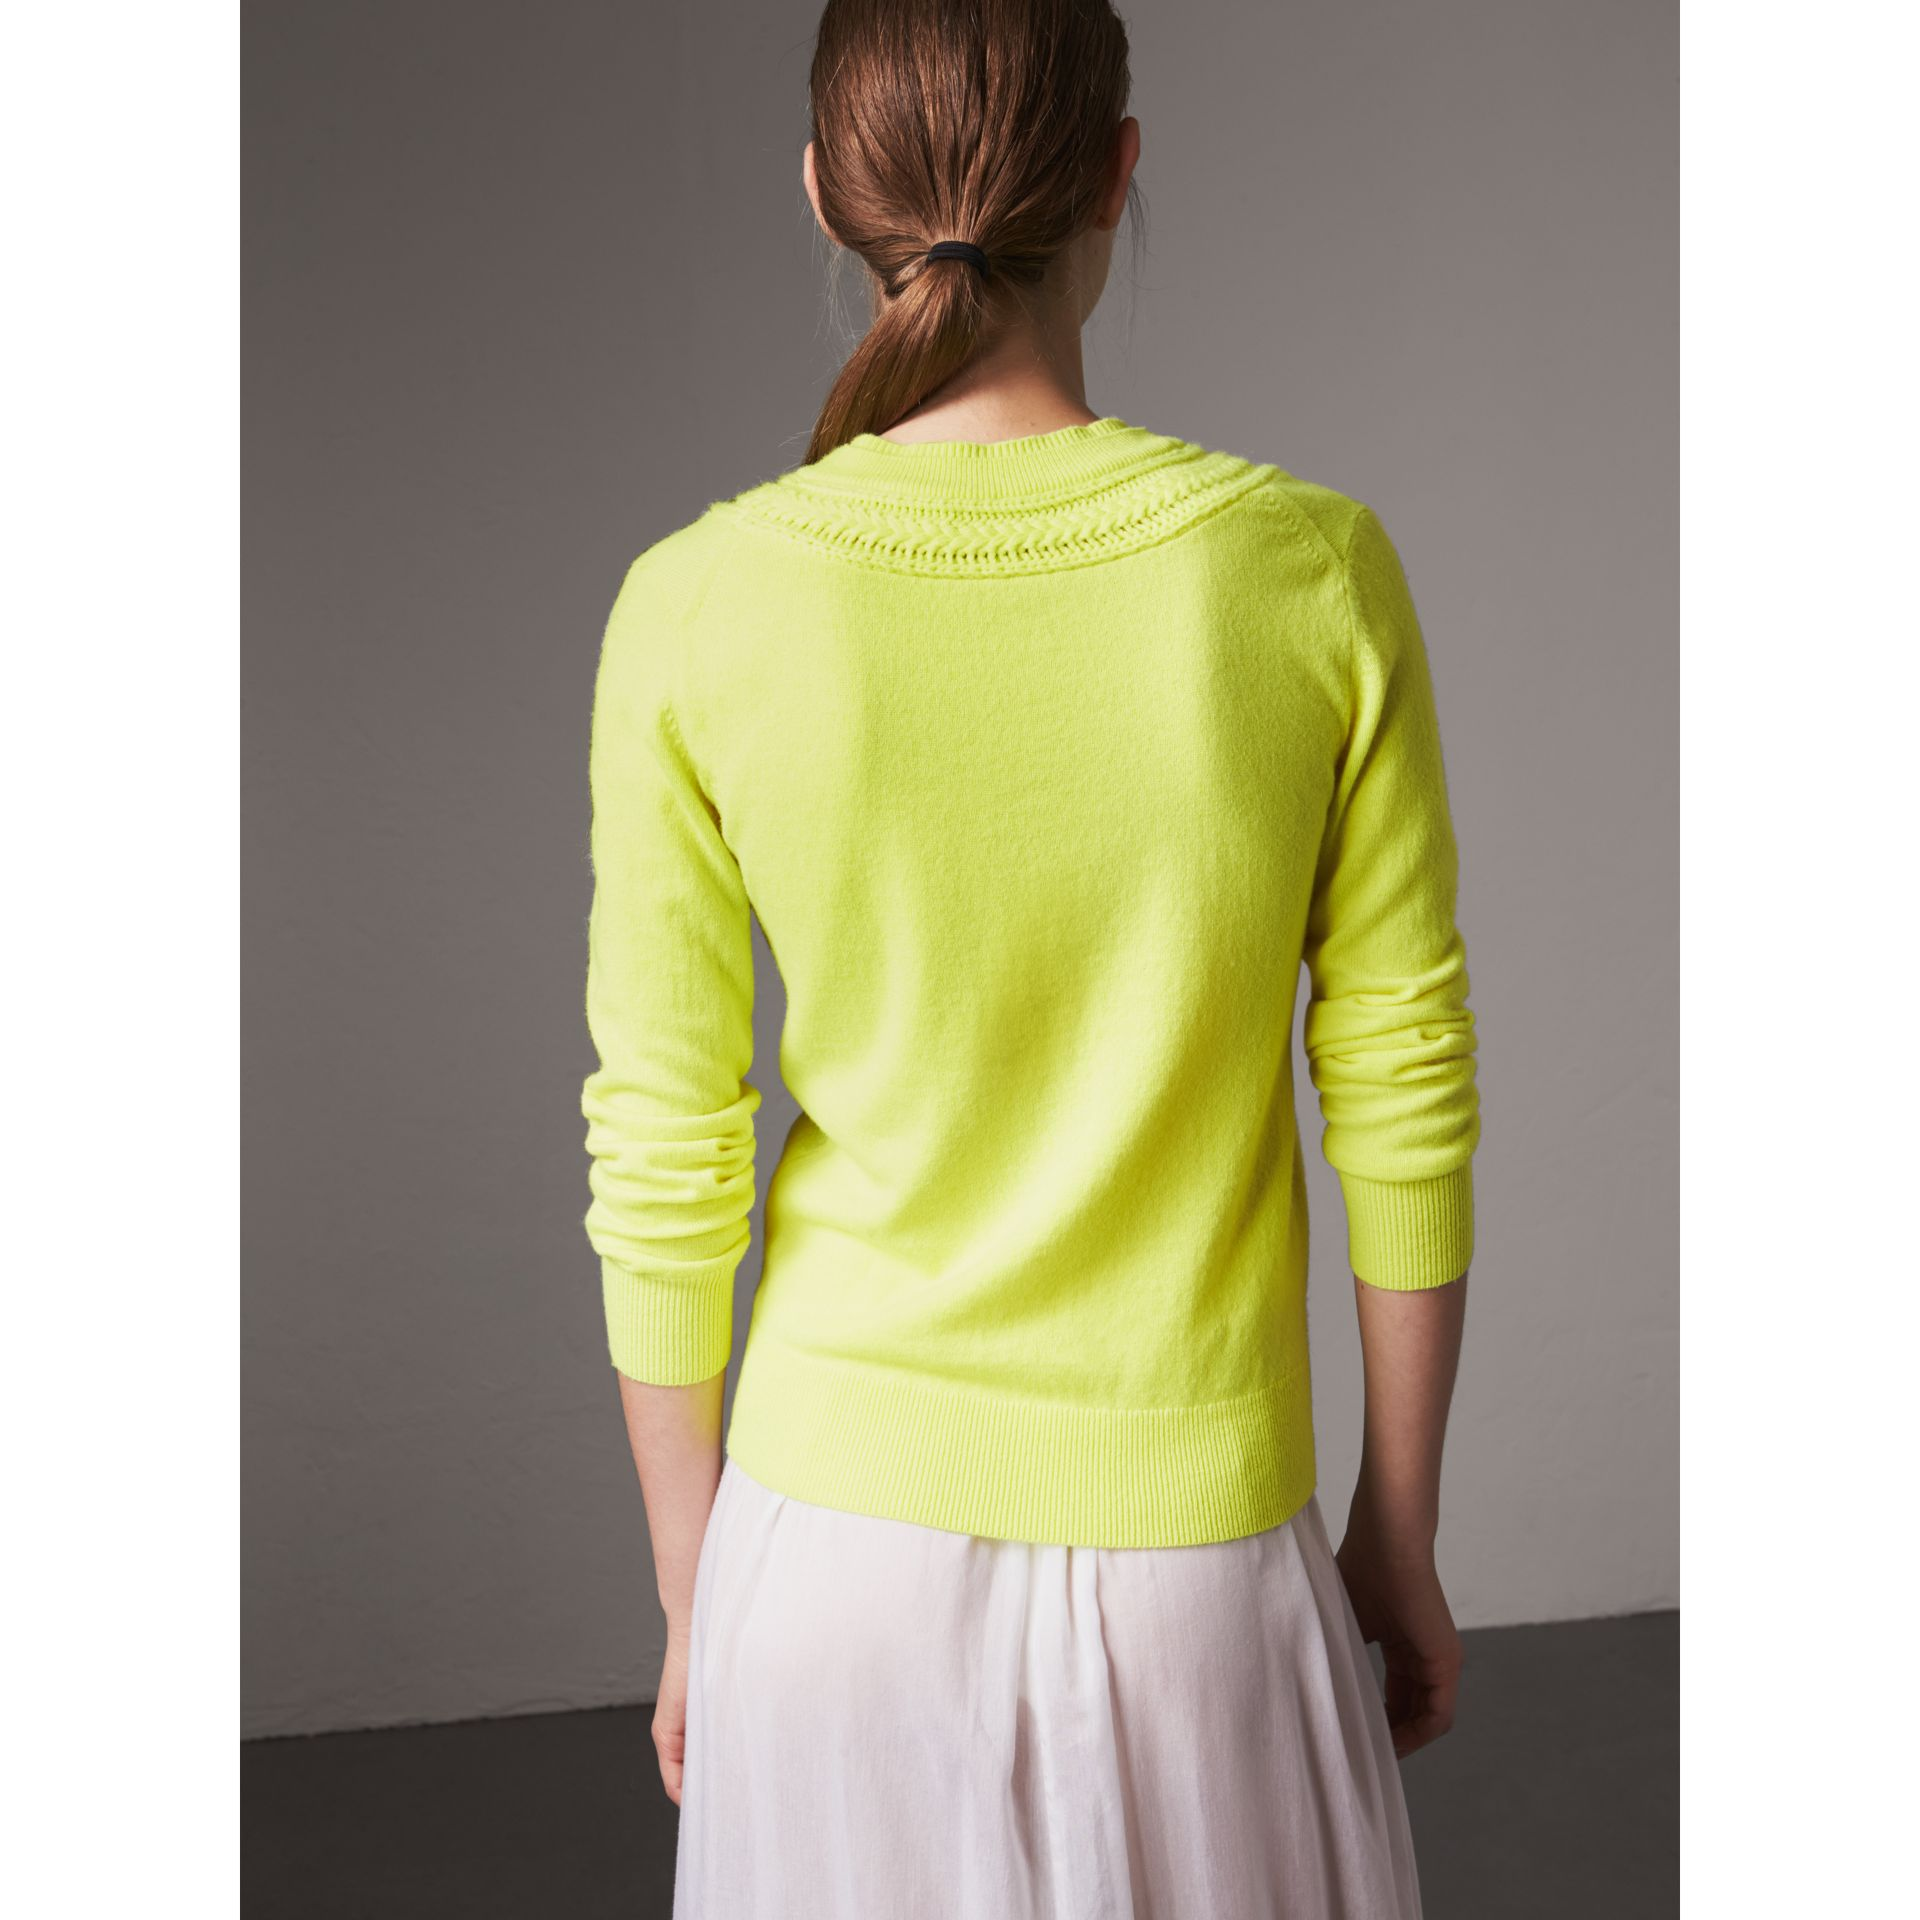 Cable Knit Yoke Cashmere Sweater in Fluorescent Yellow - Women | Burberry Hong Kong - gallery image 2